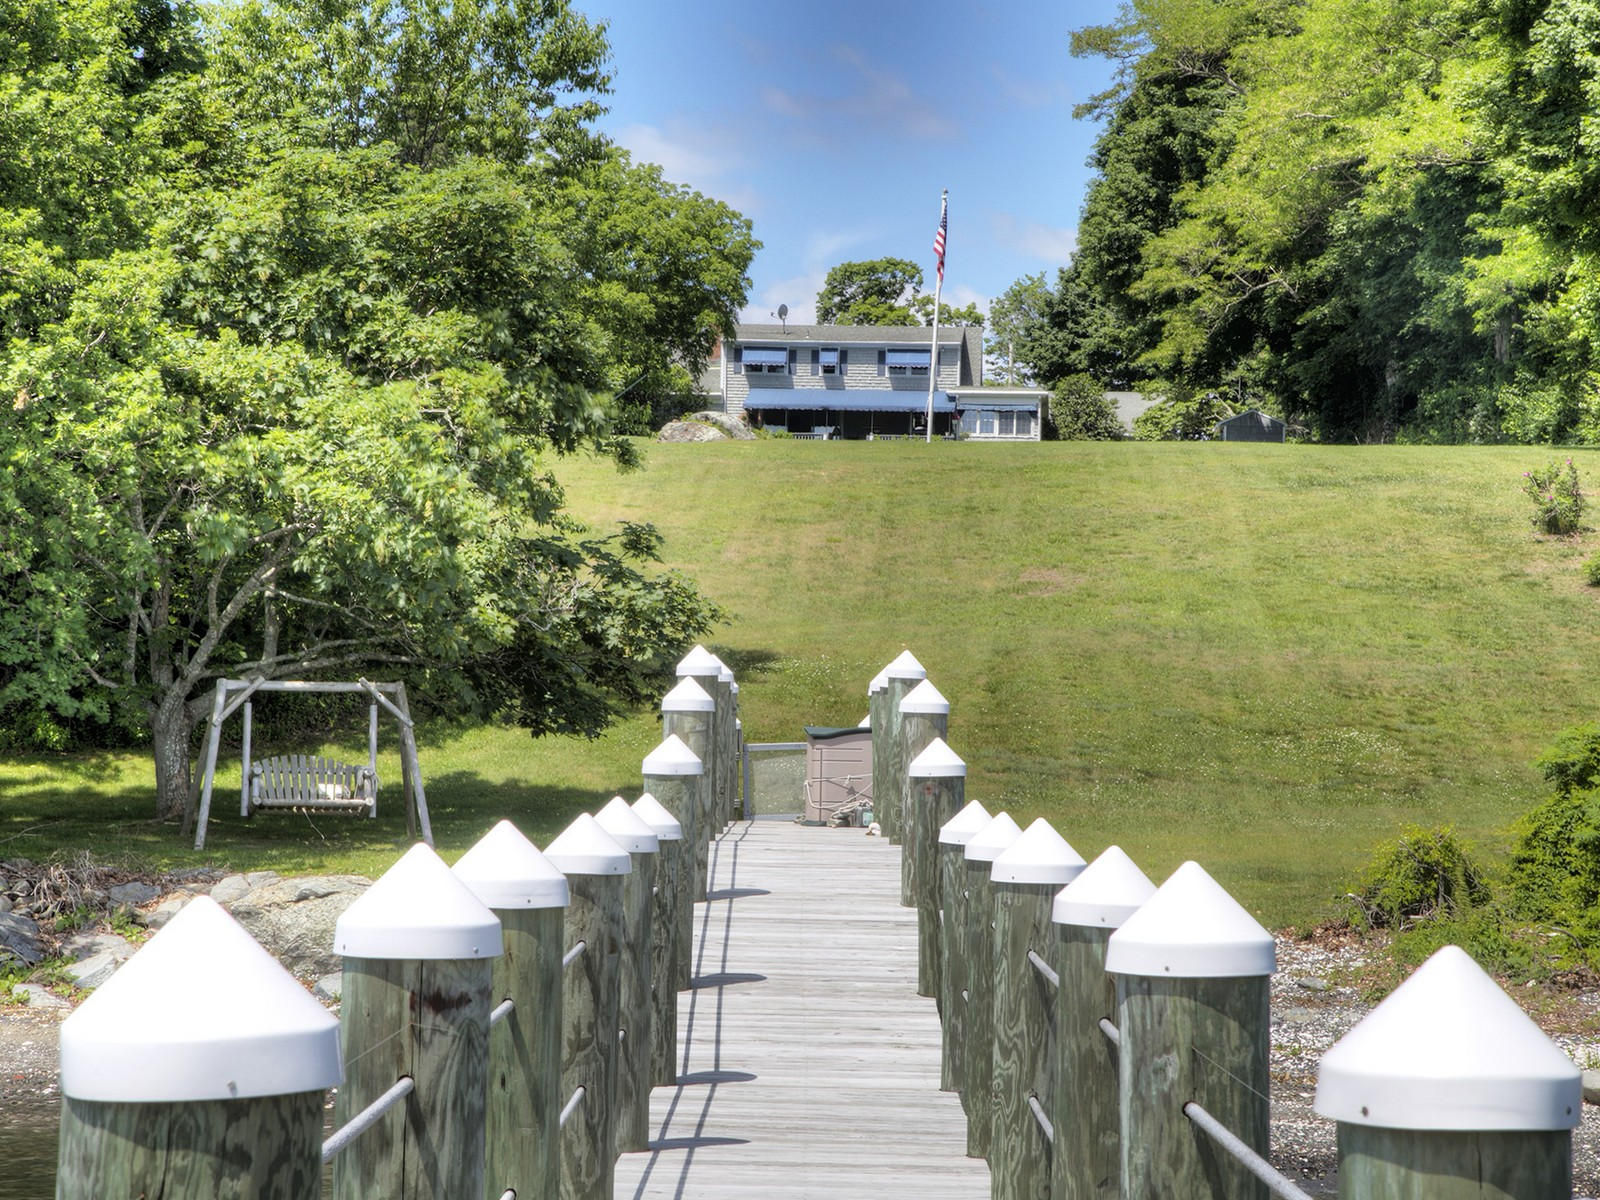 Single Family Home for Sale at Waterfront Colonial-Cape 457 Poppasquash Rd Bristol, Rhode Island 02809 United States